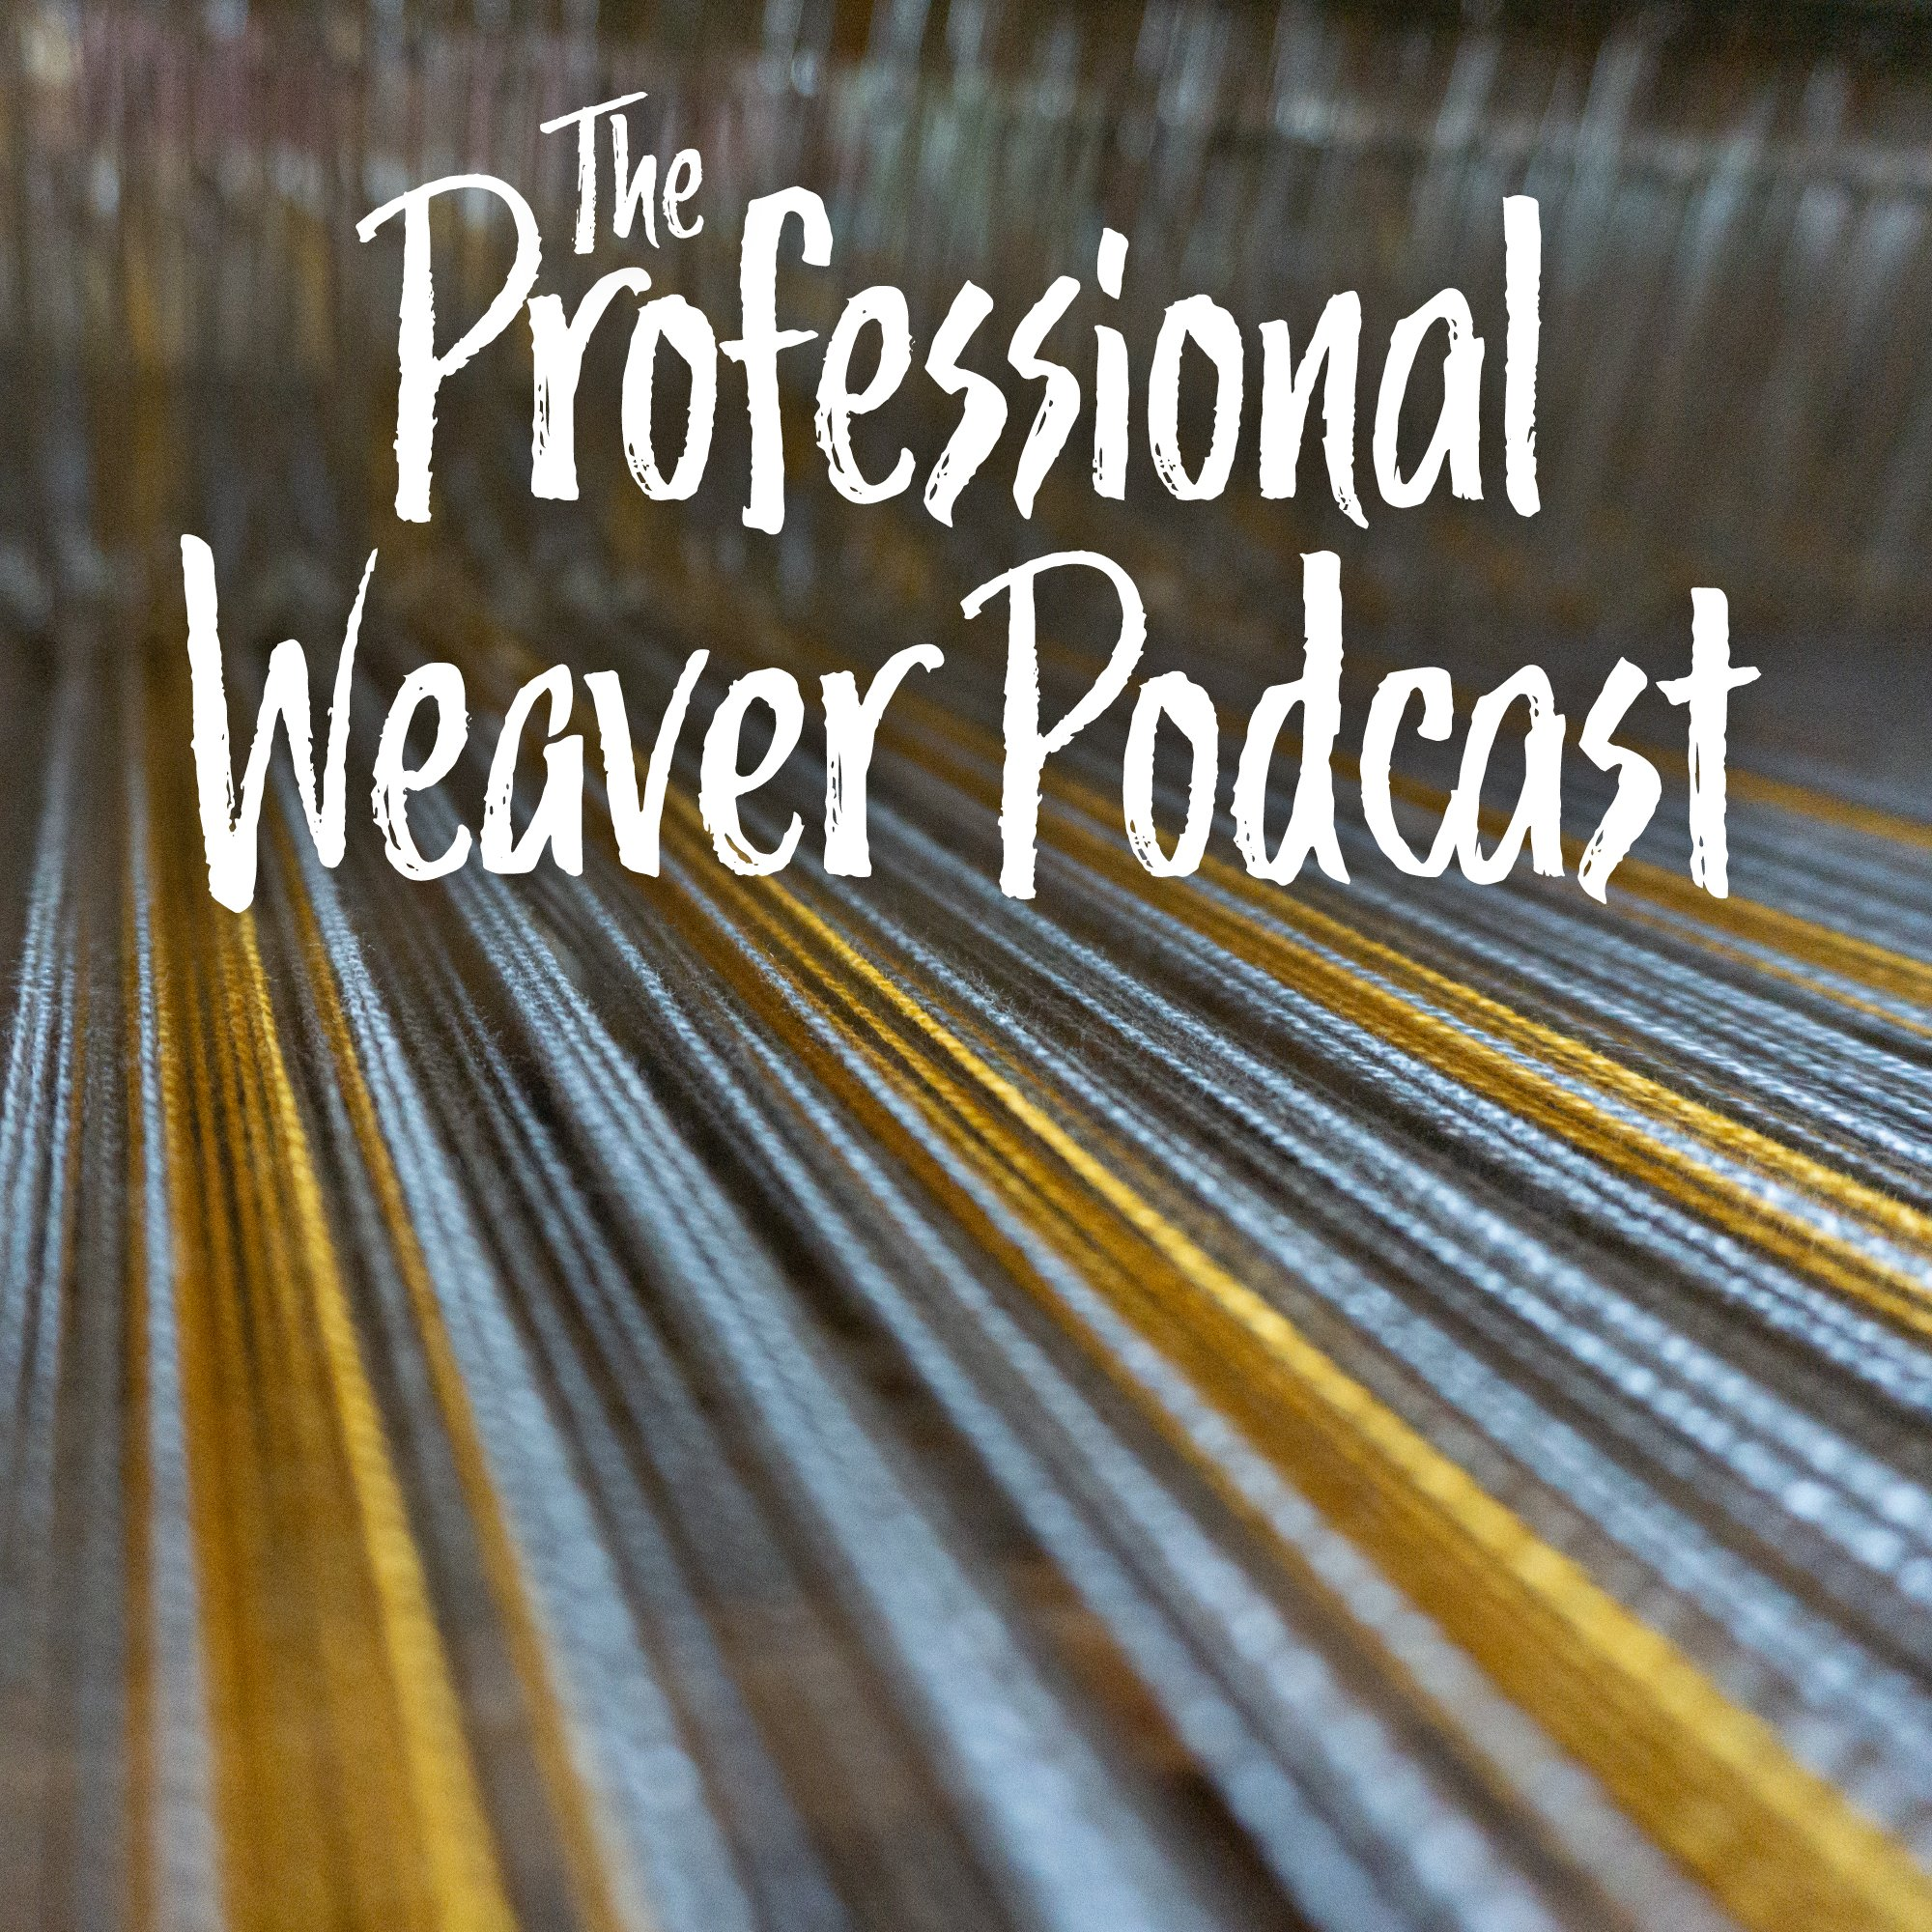 Professional Weaver Podcast Cover Art